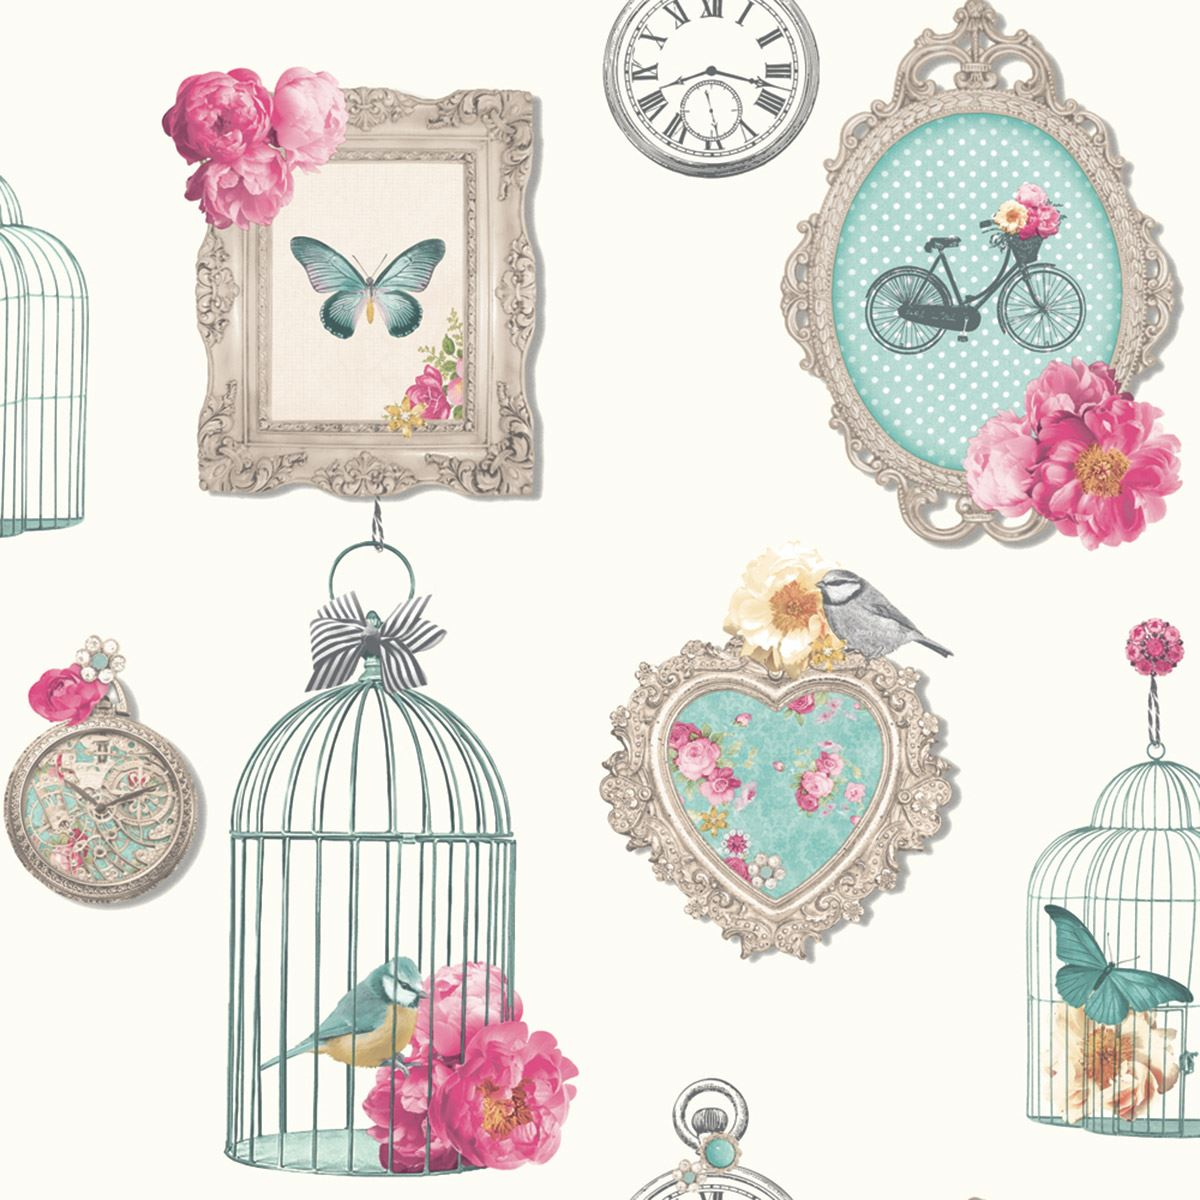 Cage clipart shabby chic CHIC FRAMES BIRD  WALLPAPER